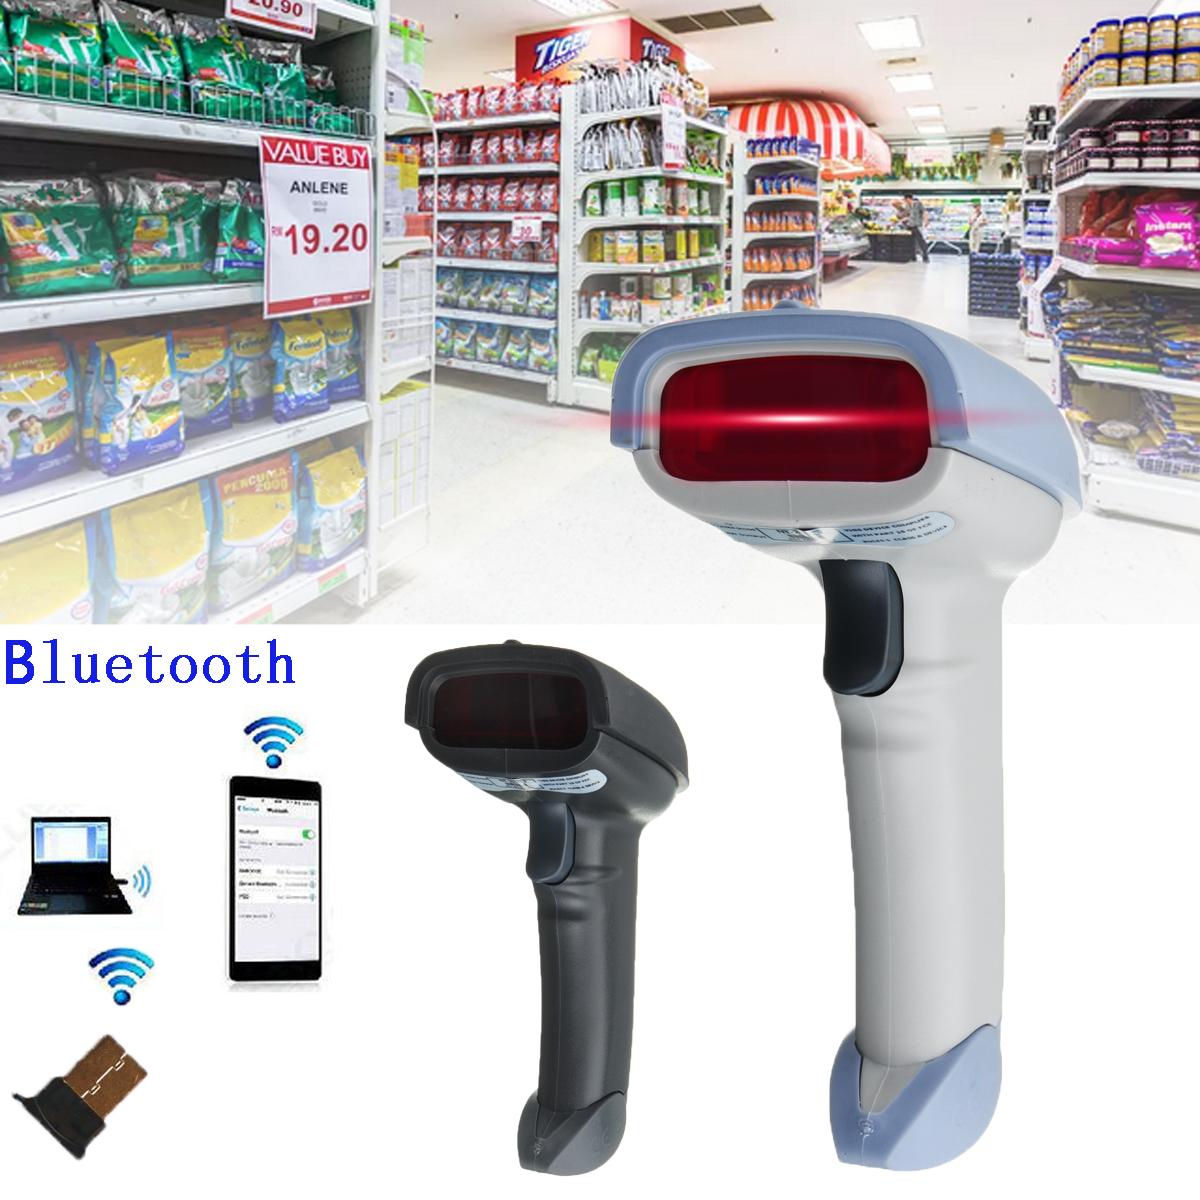 Wireless bluetooth Handheld USB Laser Barcode Scanner Barcode For PC IOS